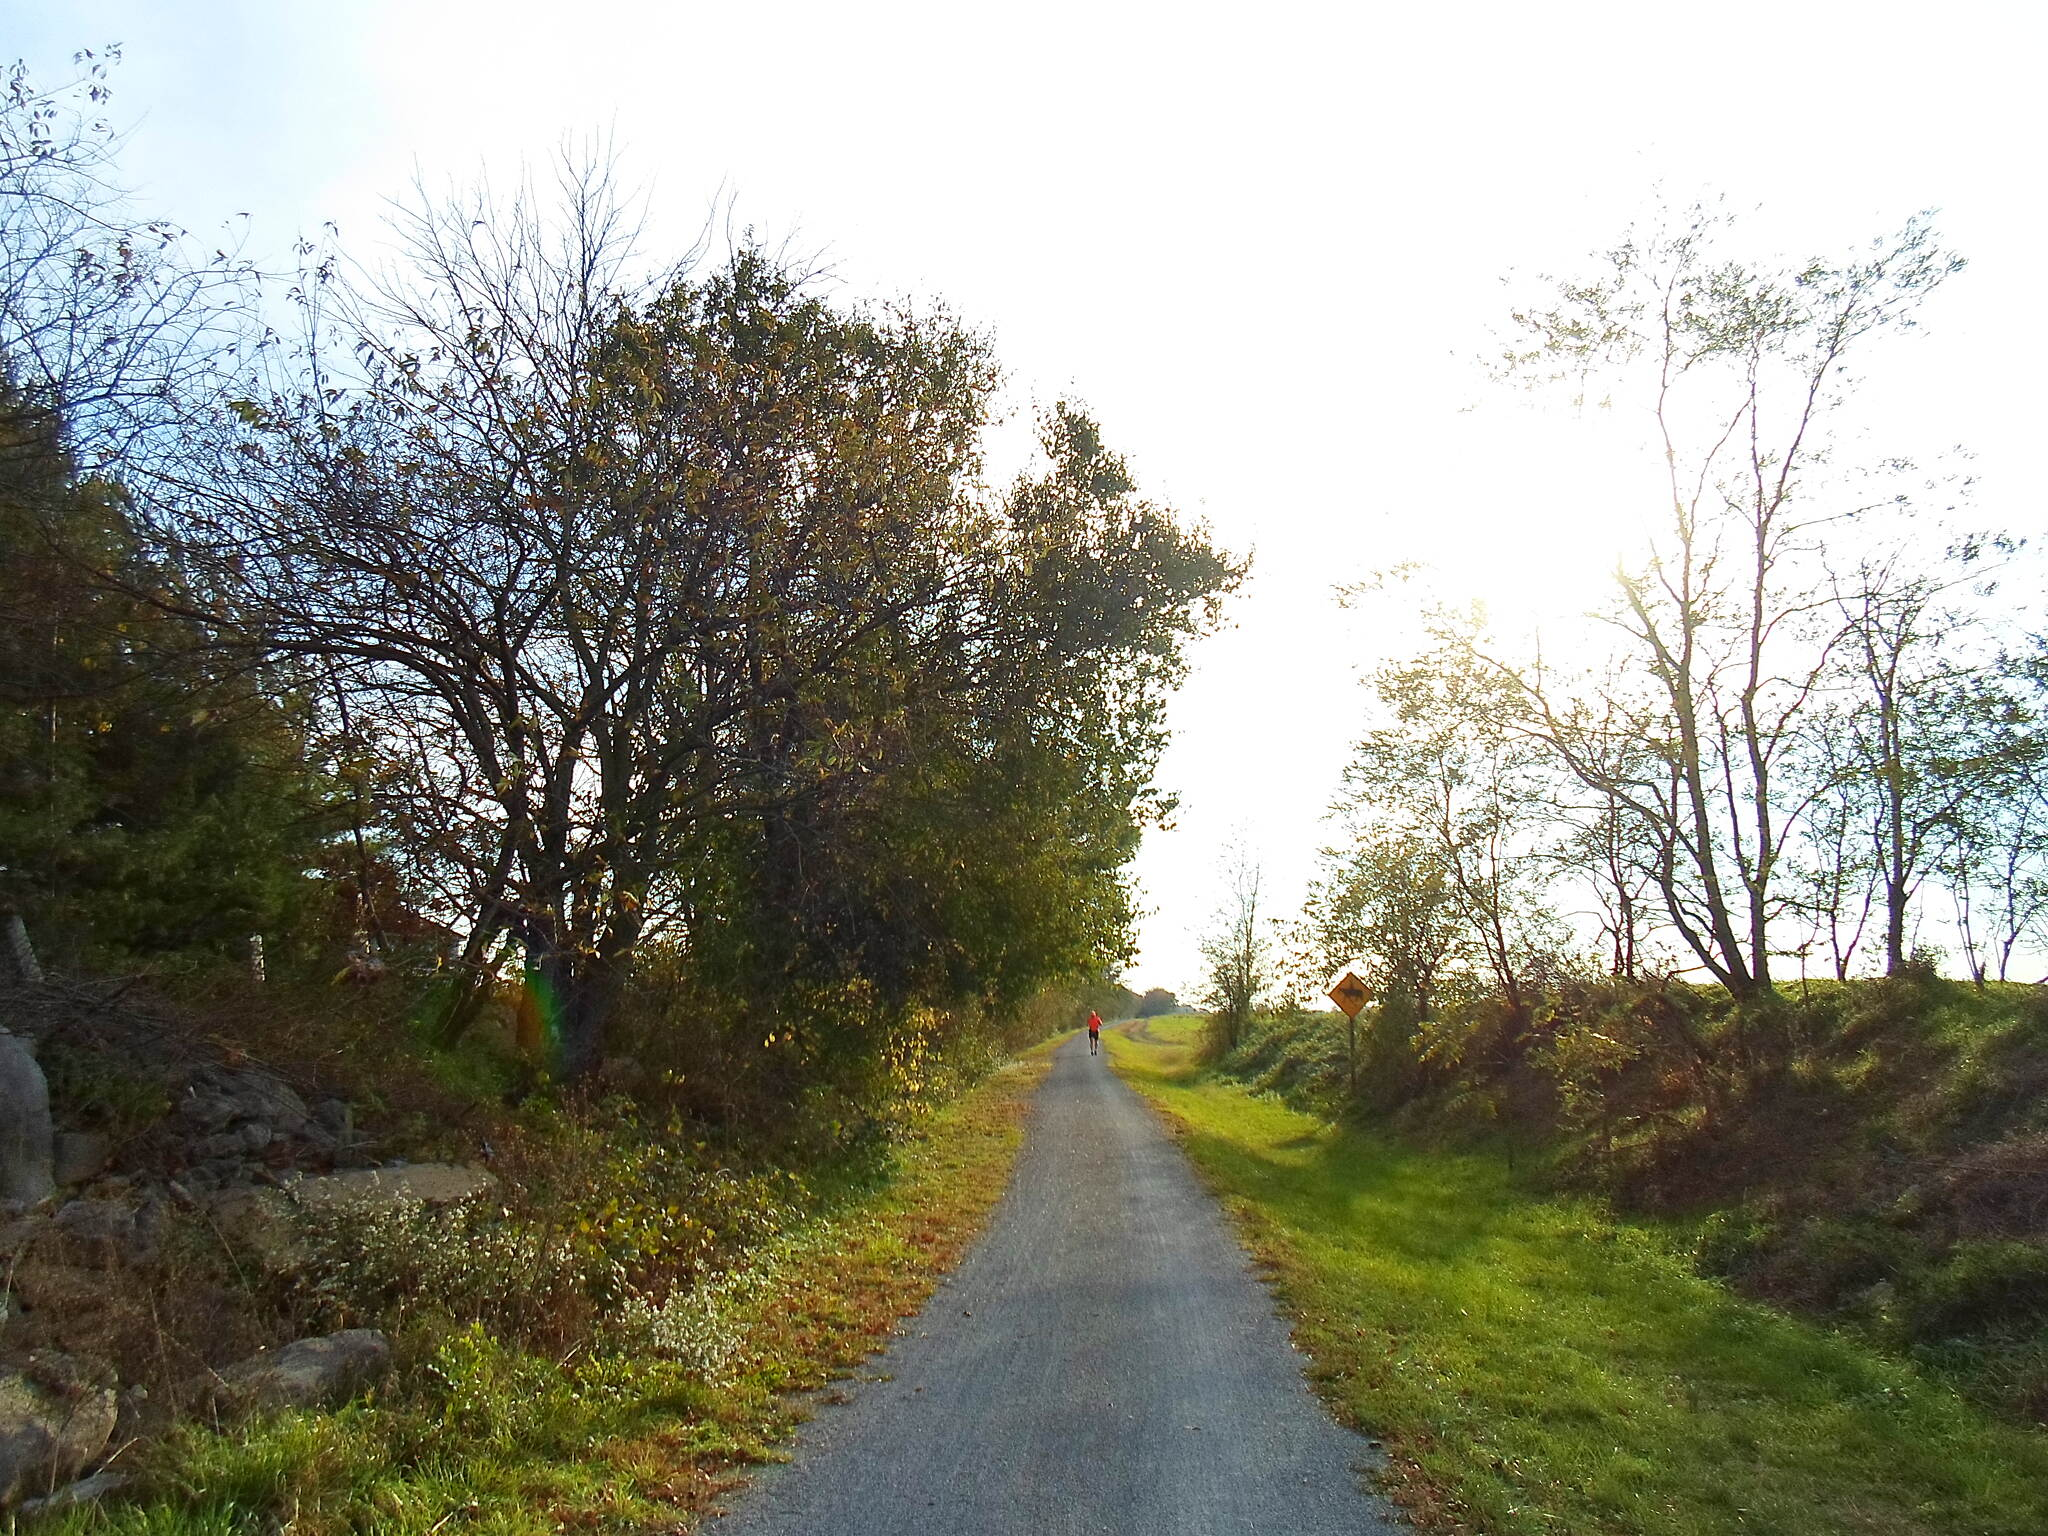 Cumberland Valley Rail Trail Cumberland Valley Rail Trail Heading southwest down the trail on an autumn evening. Taken Oct. 2016.